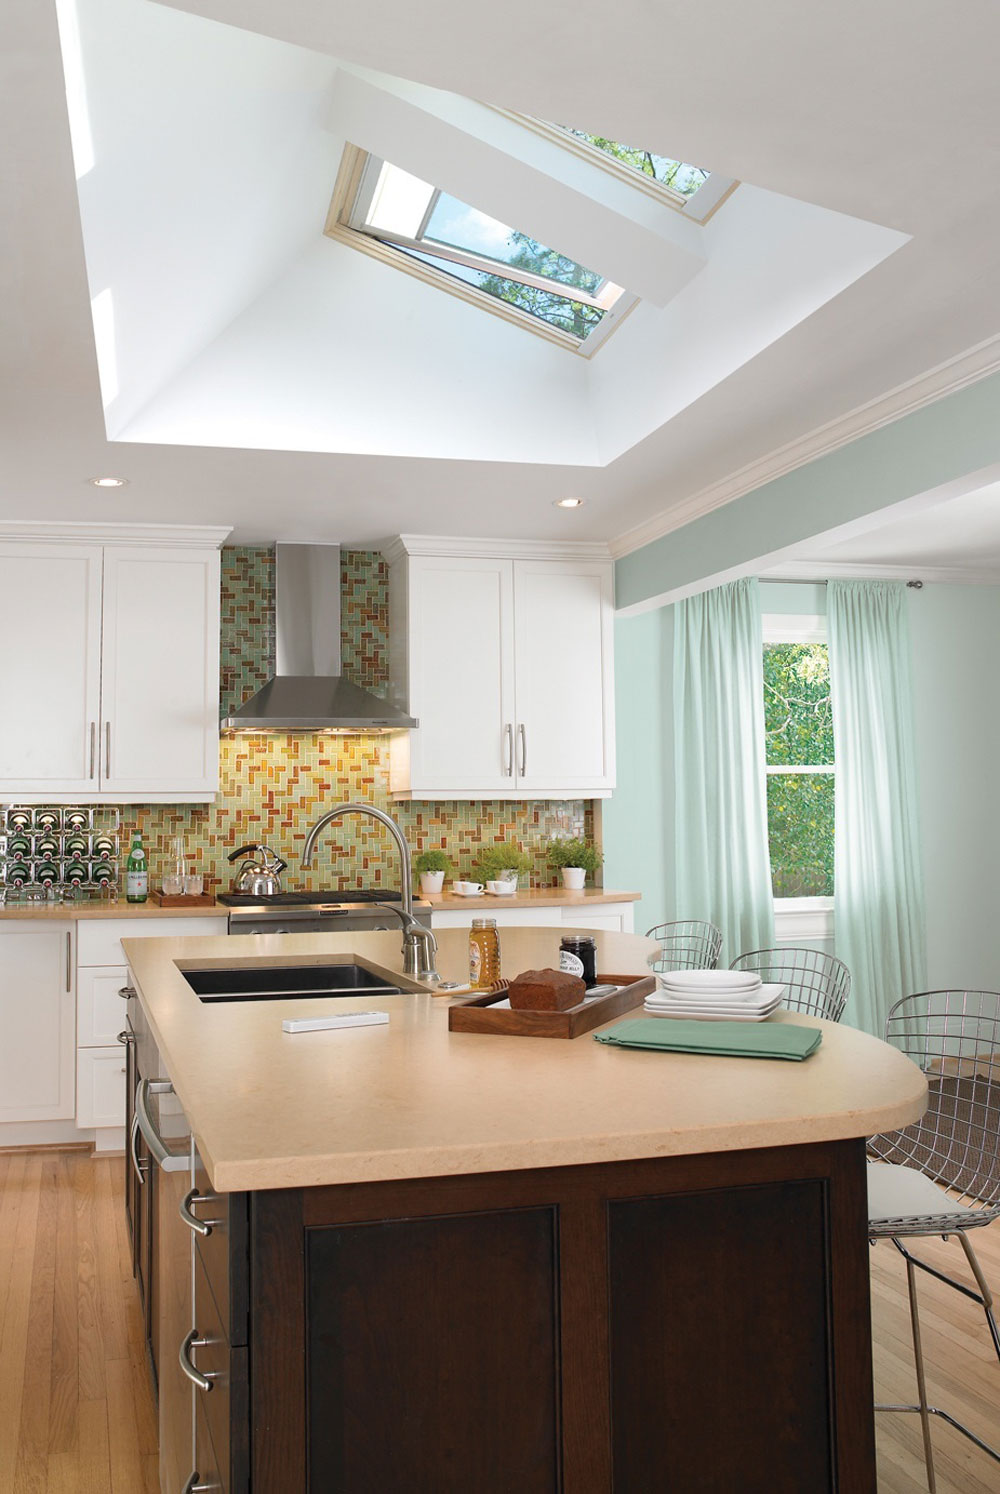 Kitchens With Skylights For More Natural Light (11)